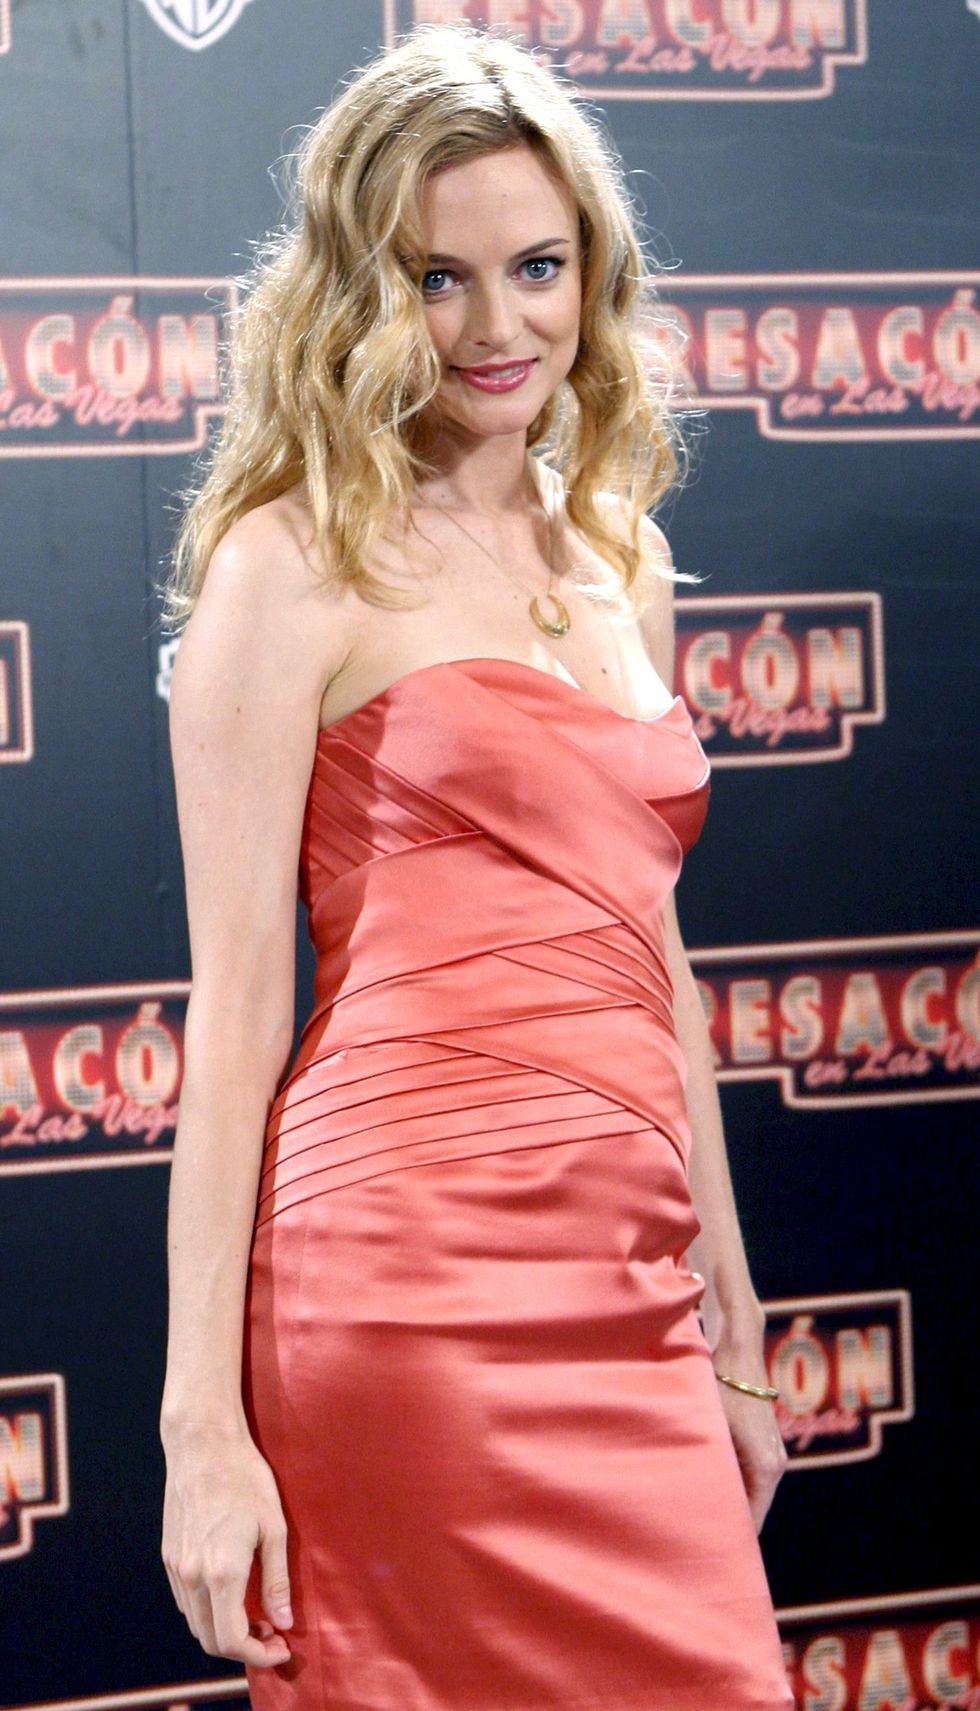 heather-graham-the-hangover-premiere-in-barcelona-01